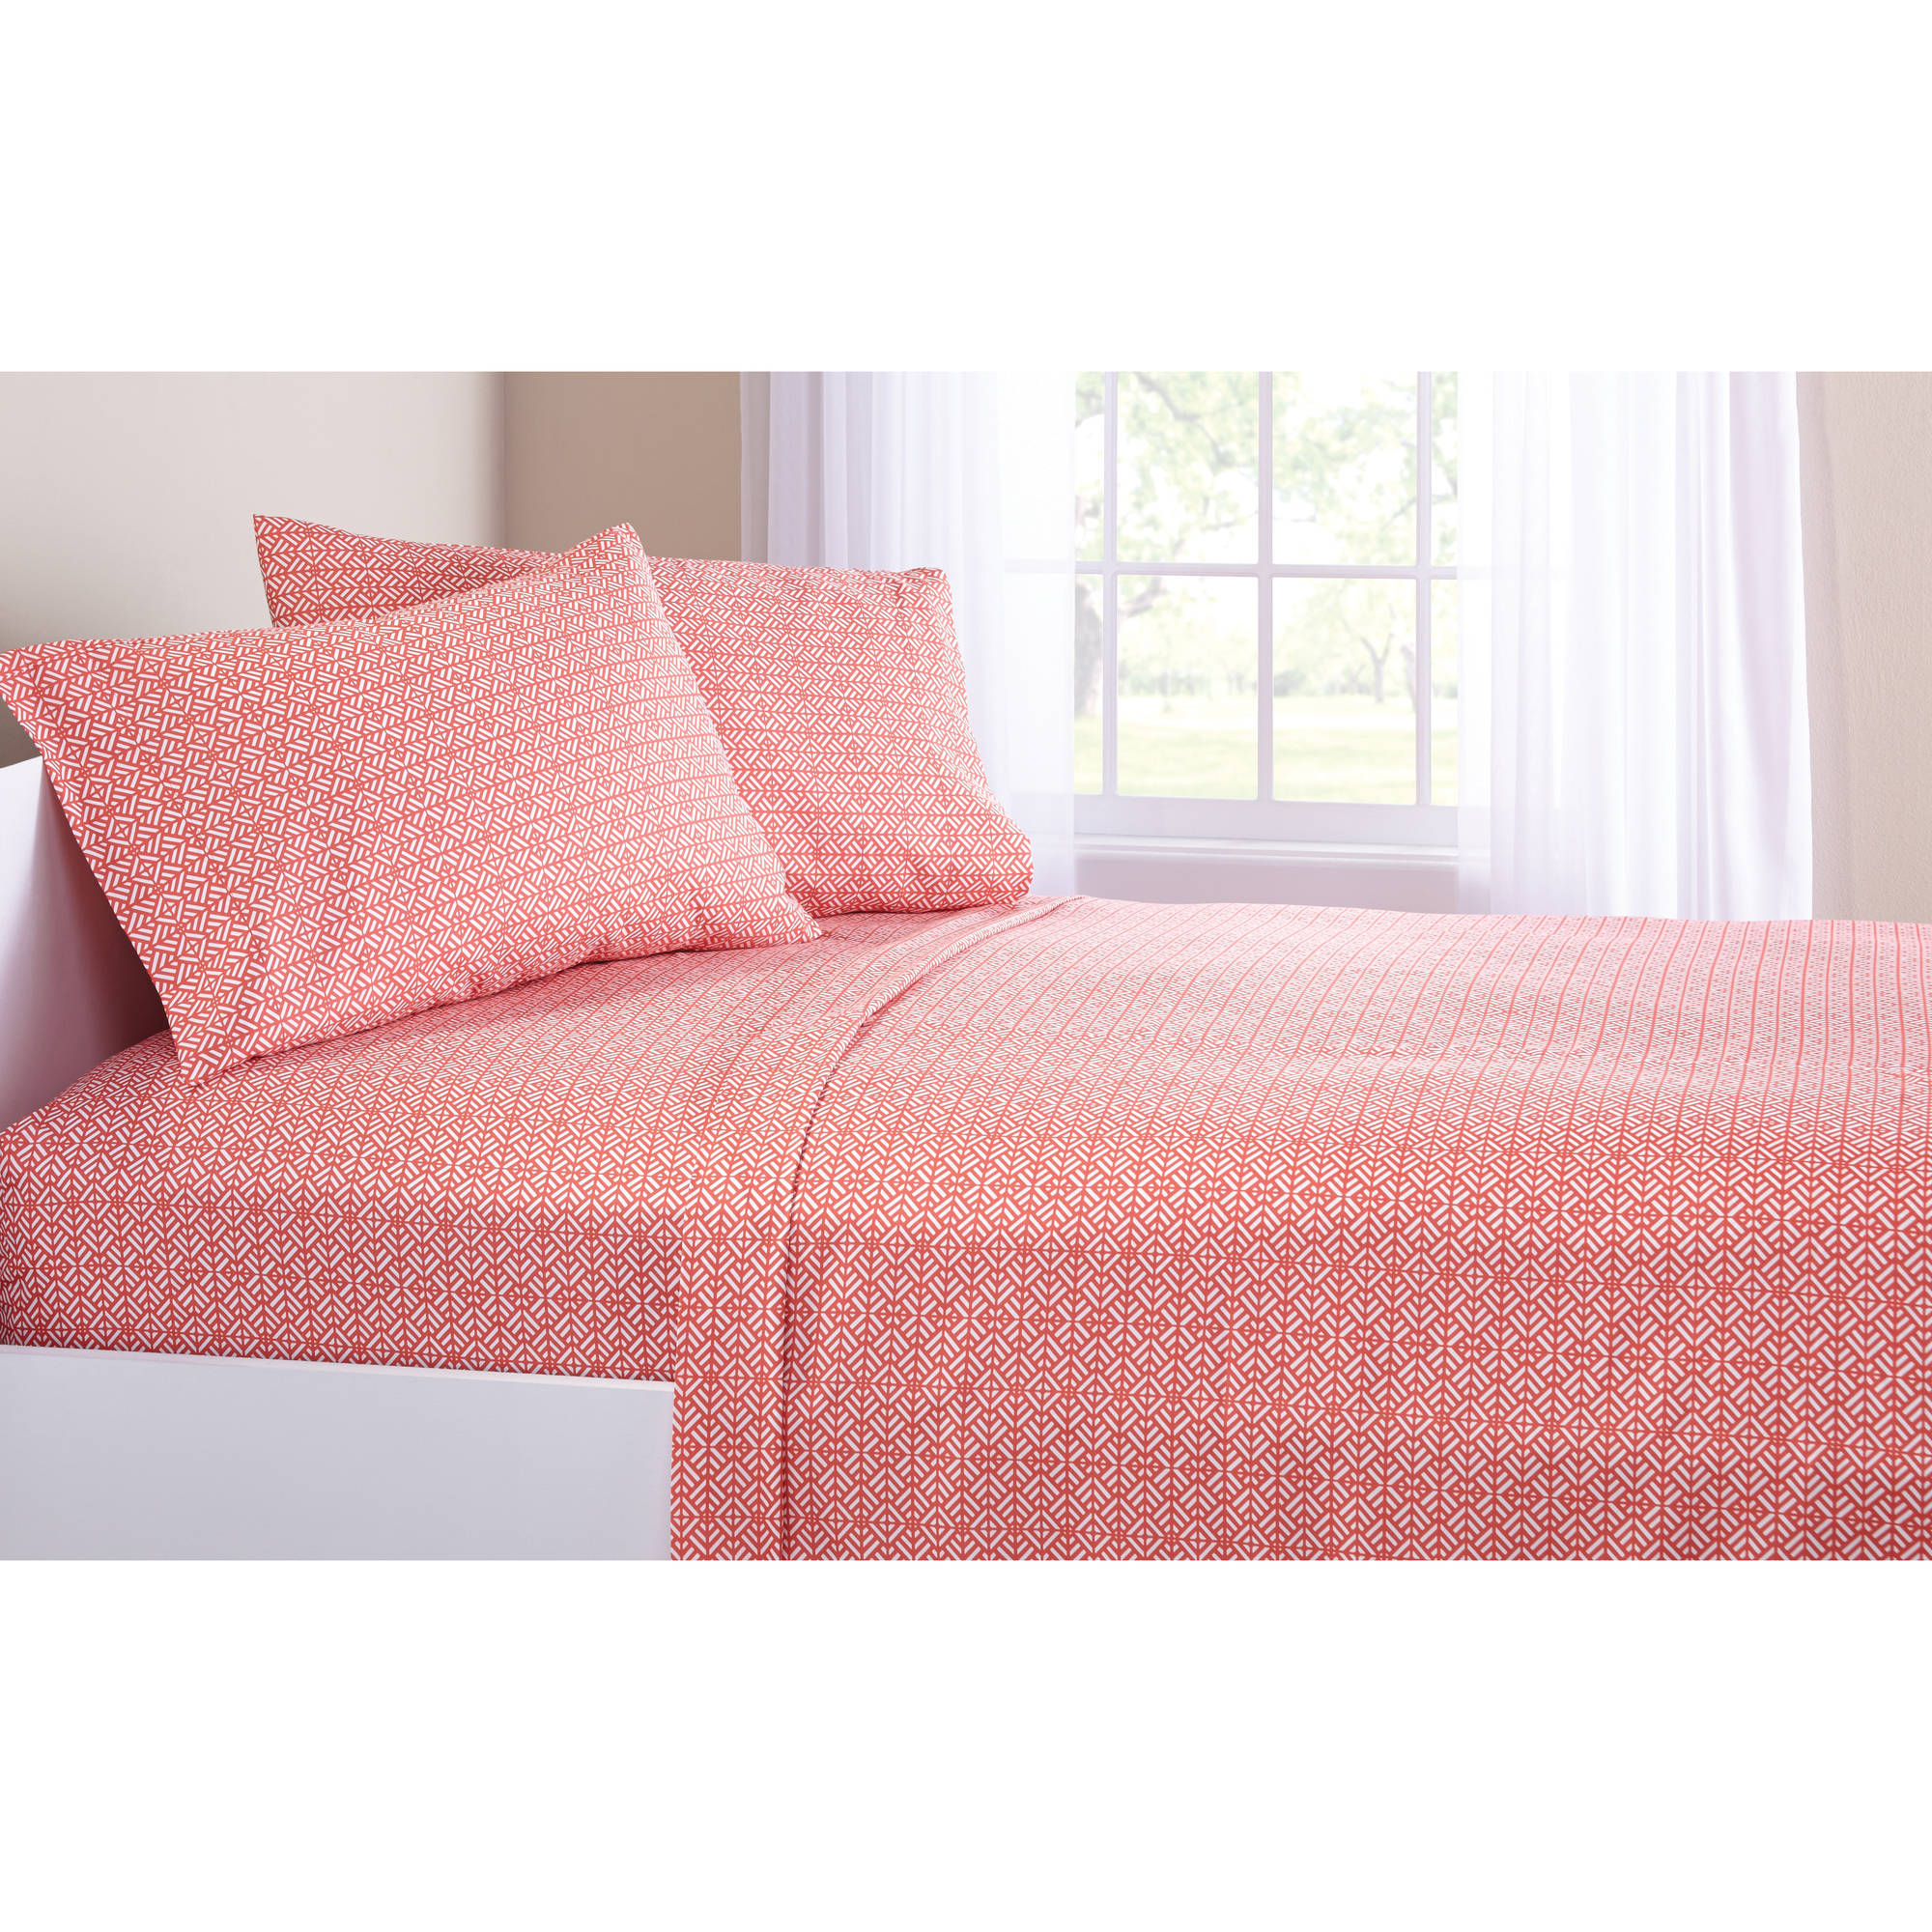 Mainstays Coral Damask Bed in a Bag Bedding Set Walmart